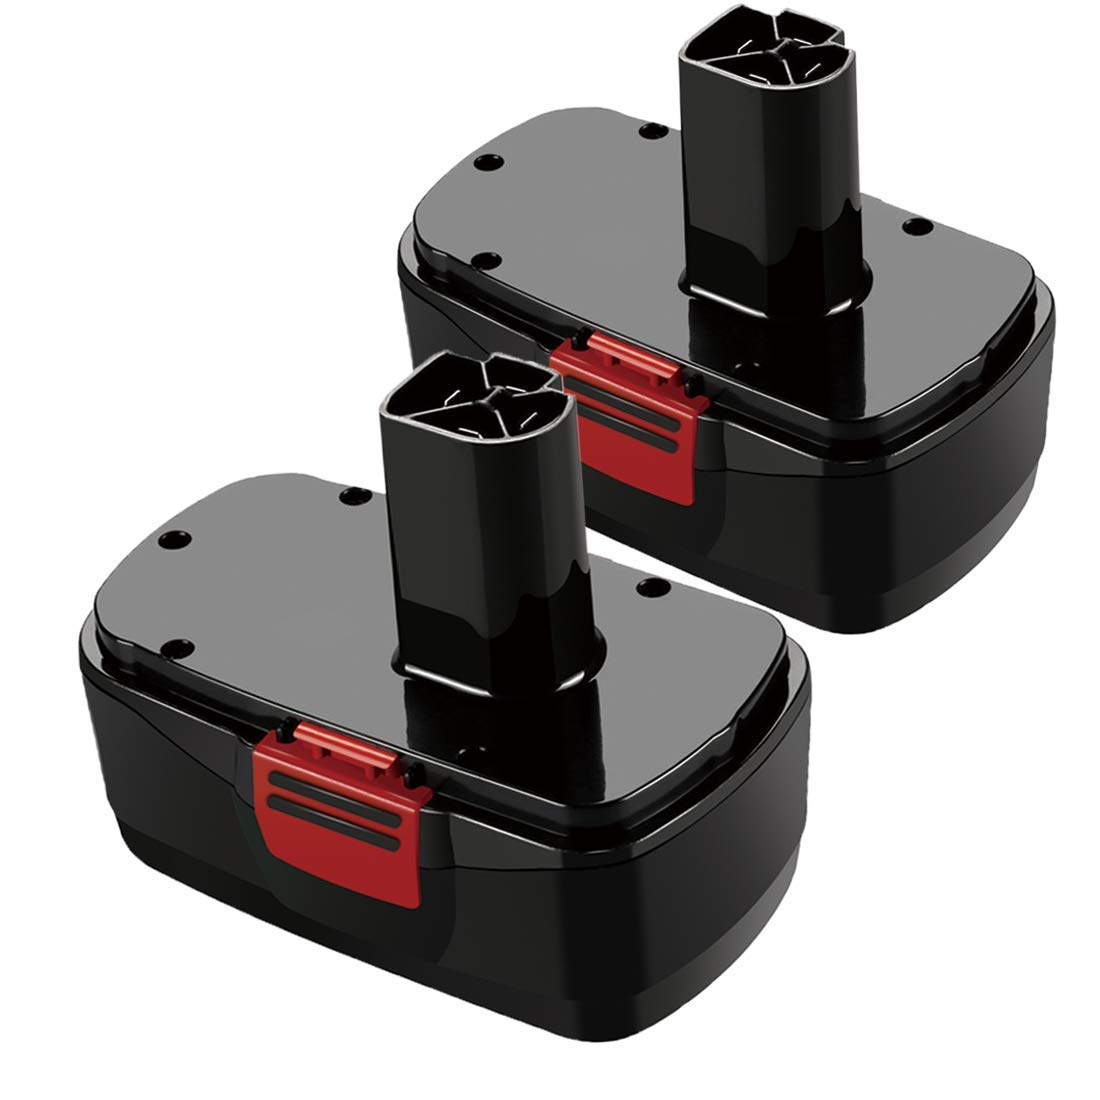 2 Pack 19.2 Volt Battery Replace for Craftsman C3 DieHard 130279005 1323903 11375 11376 120235021 315.115410 315.11485 Cordless Tools - 2 Pack